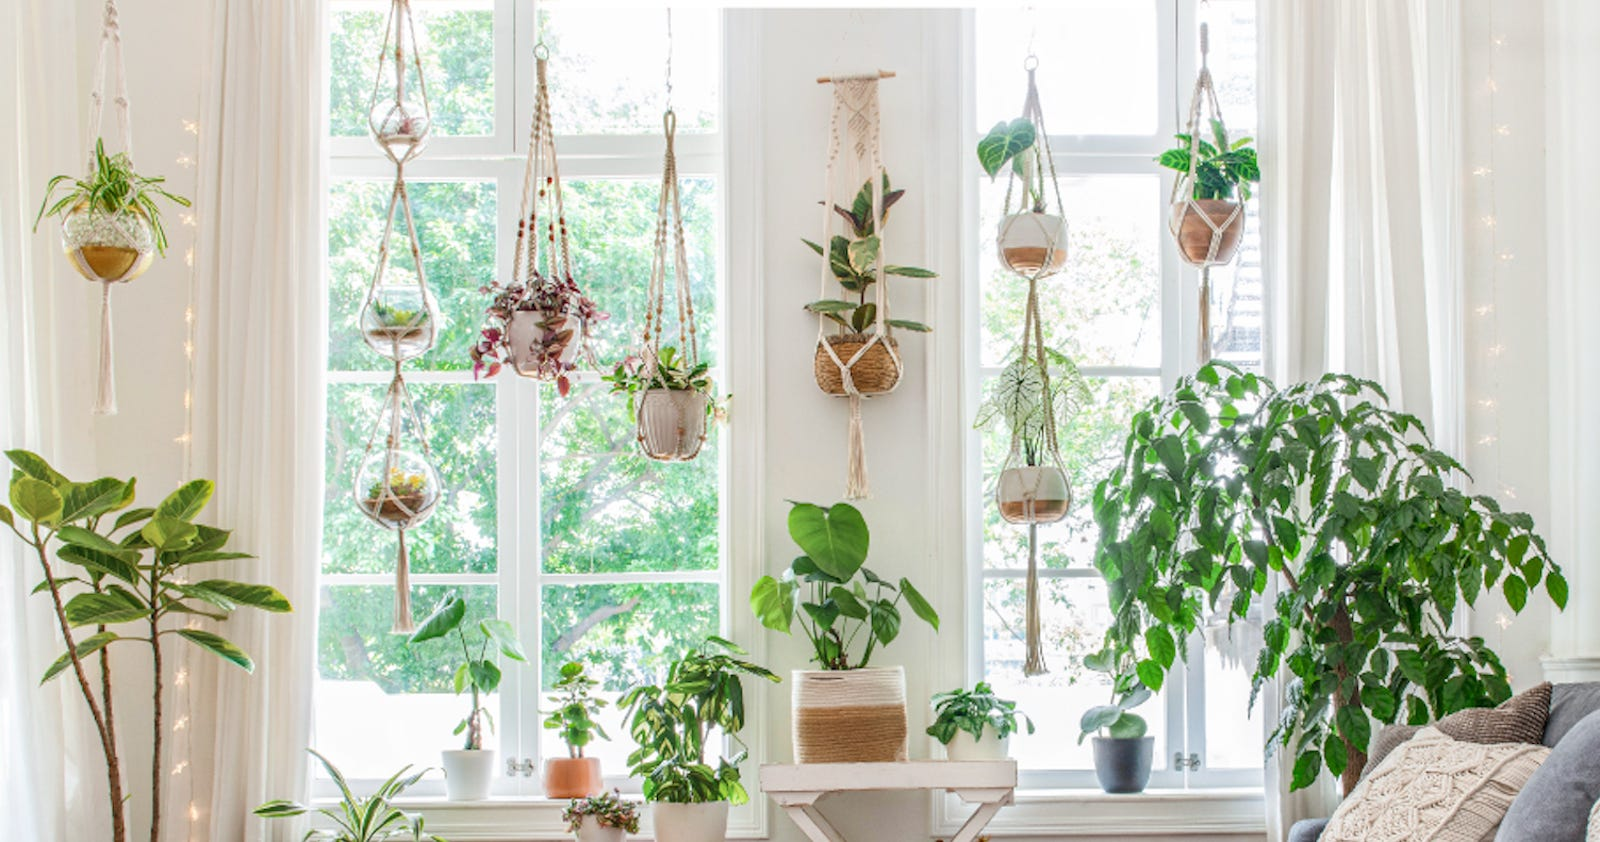 Seven Mkono woven planters with plants hanging in front of a window.